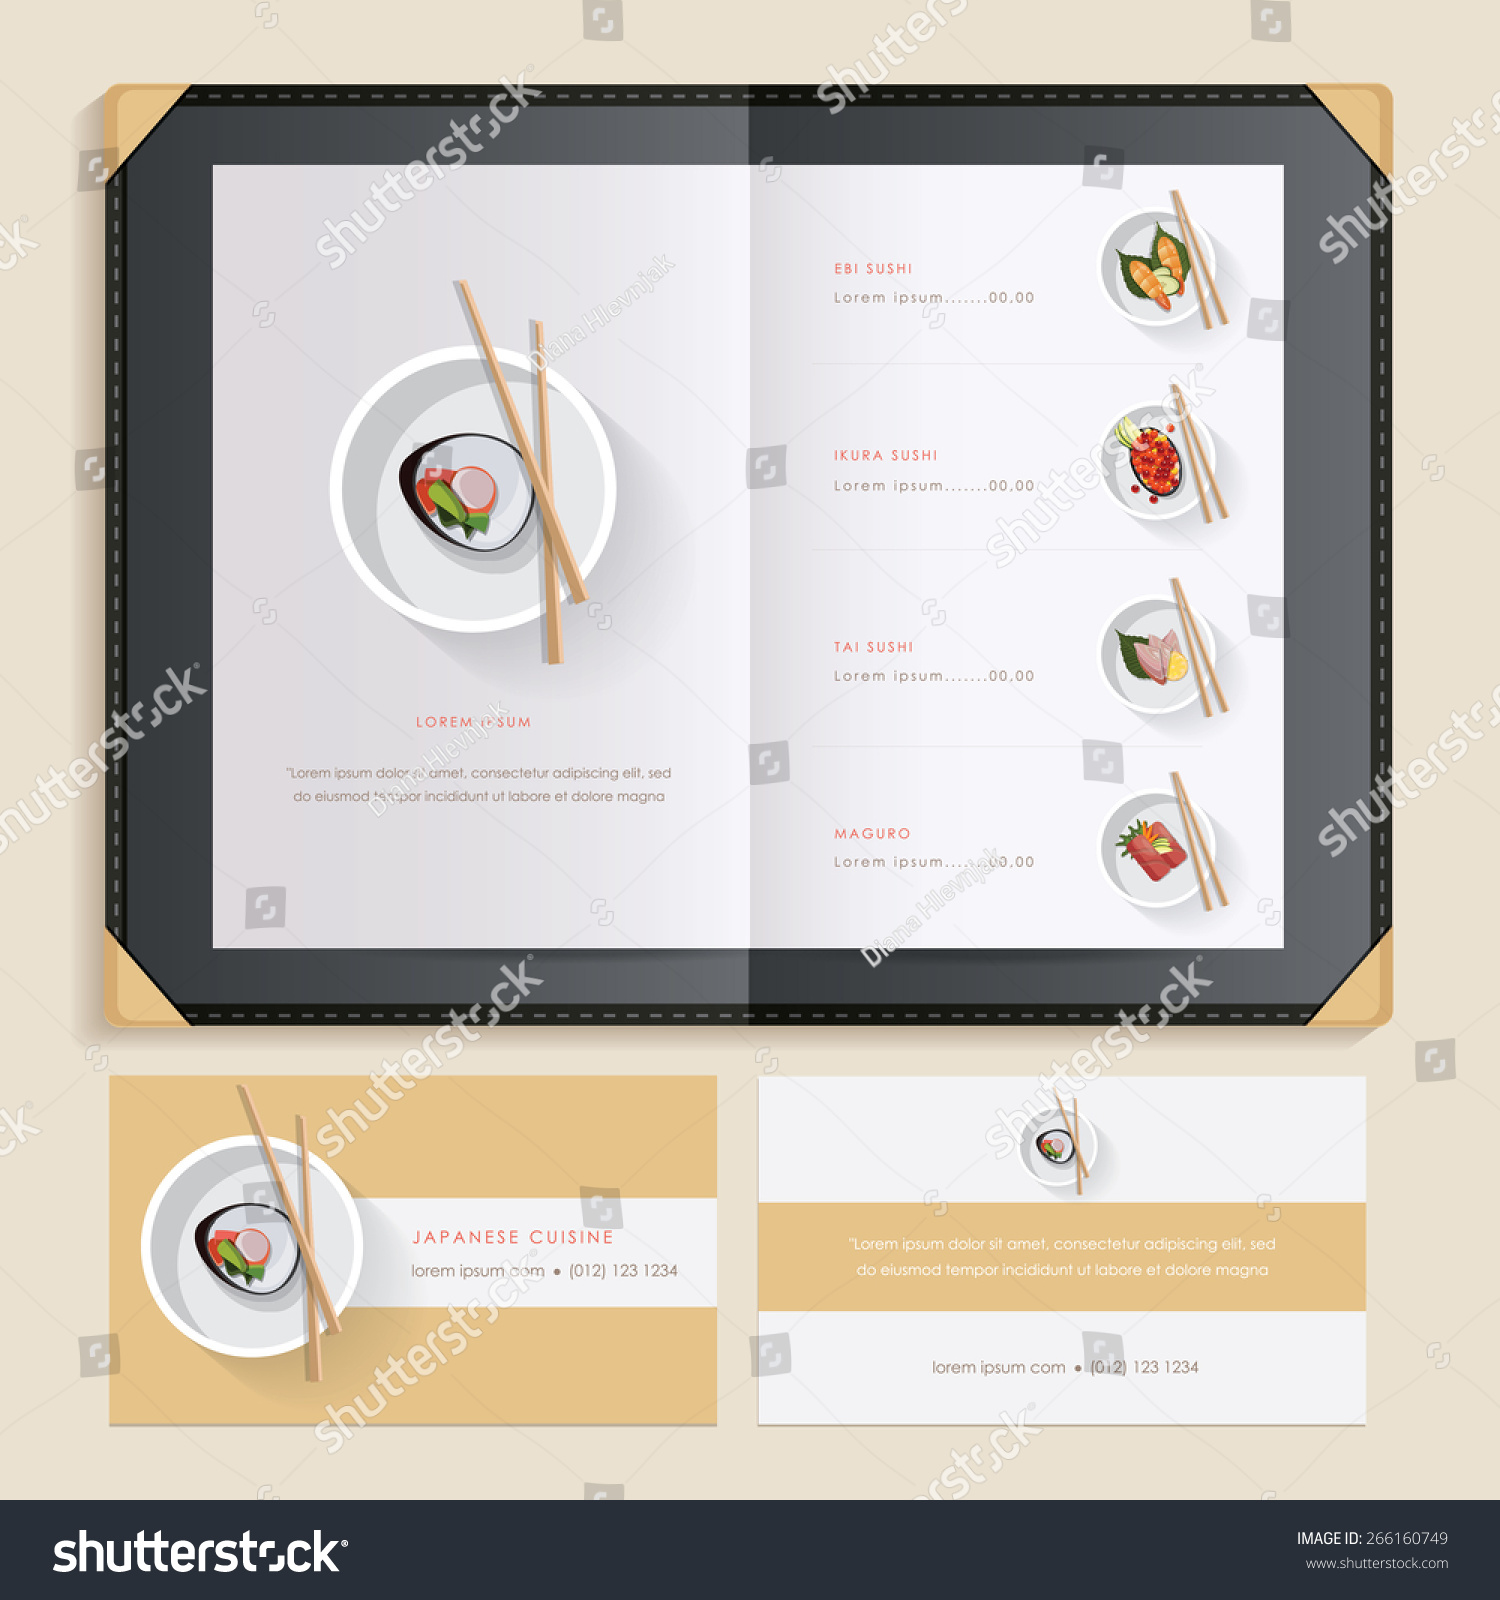 Cute 10 Best Resume Designs Tall 100 Free Resume Builder And Download Square 100 Template 18th Birthday Invitations Templates Youthful 2 Binder Spine Template Pink2 Weeks Notice Template Japanese Cuisine Sushi Recipes Menu Catalog Stock Vector 266160749 ..